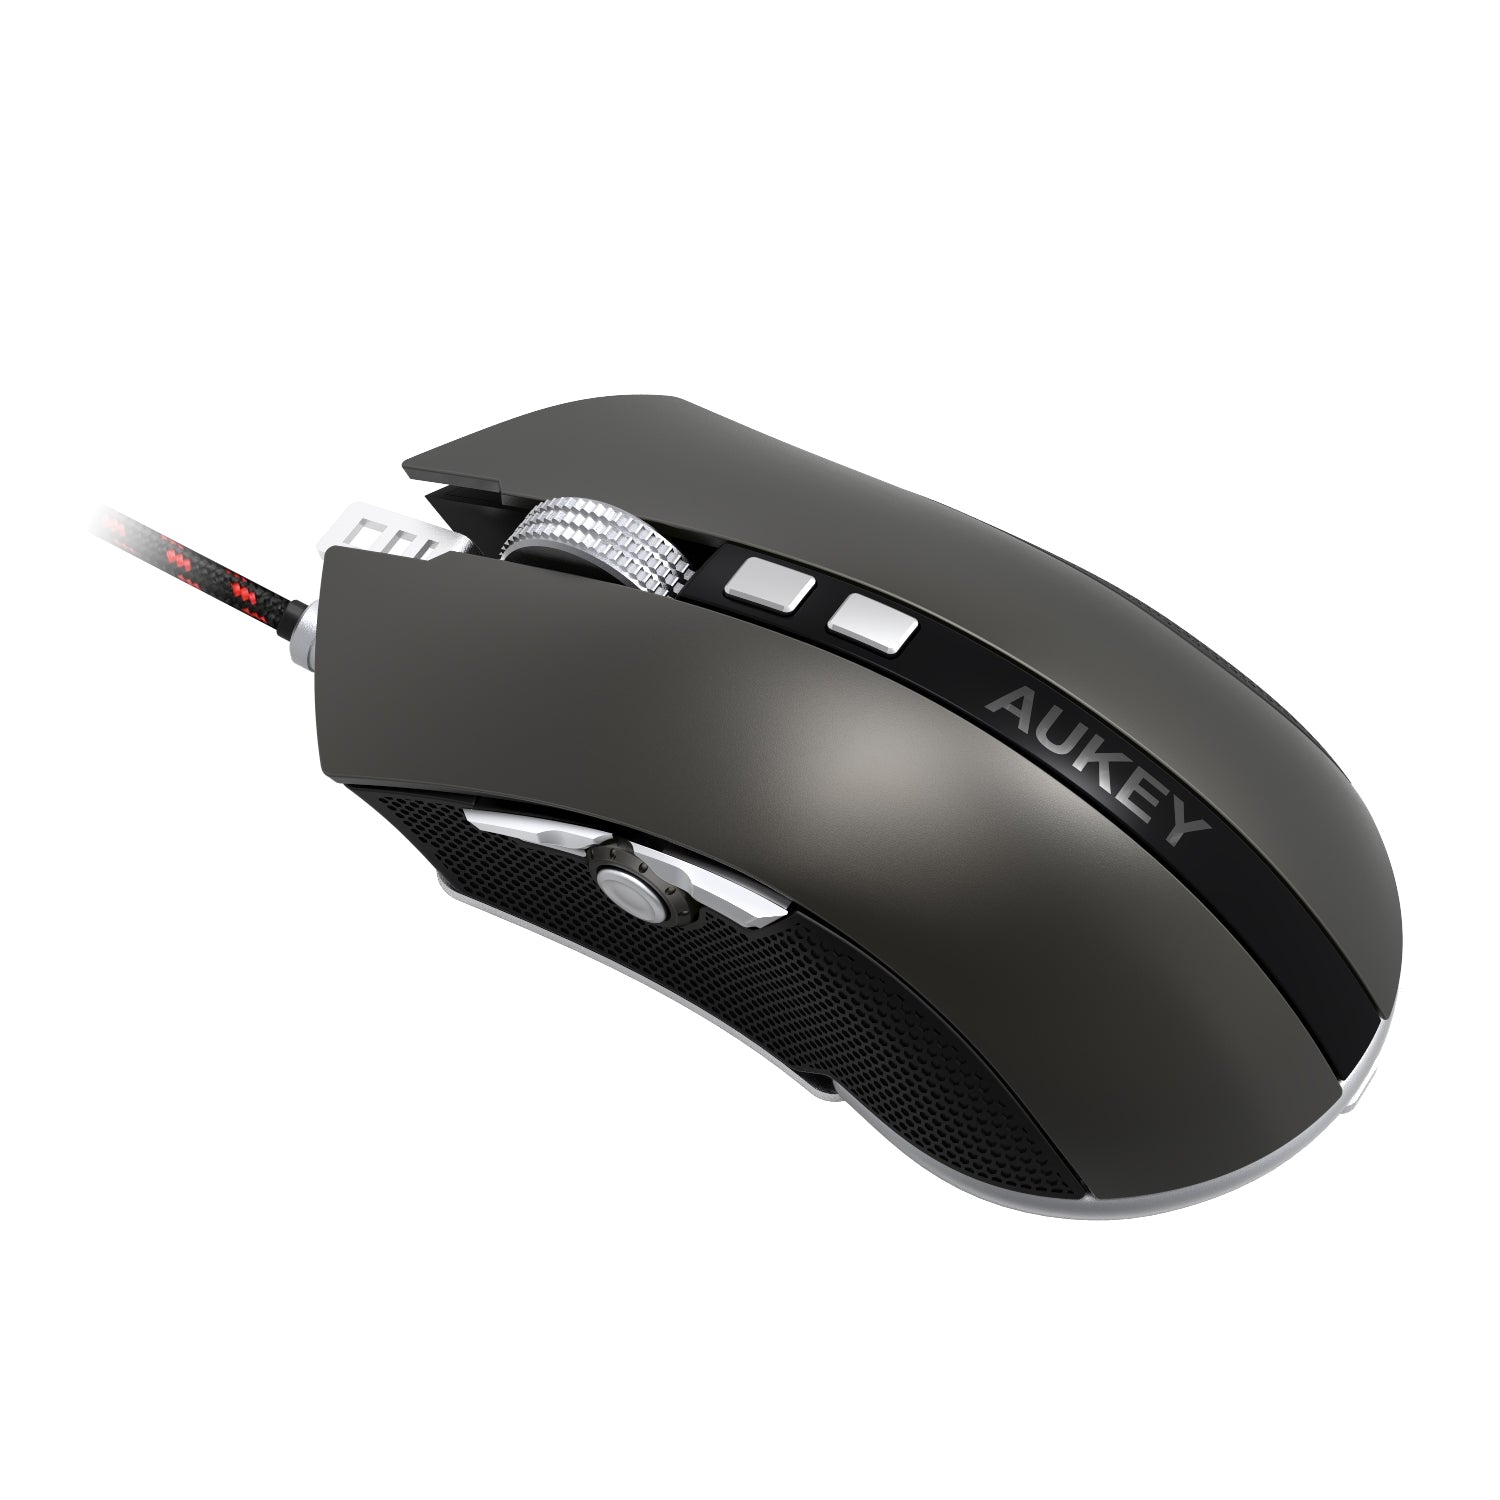 AUKEY KM-C4 RGB Gaming Mouse